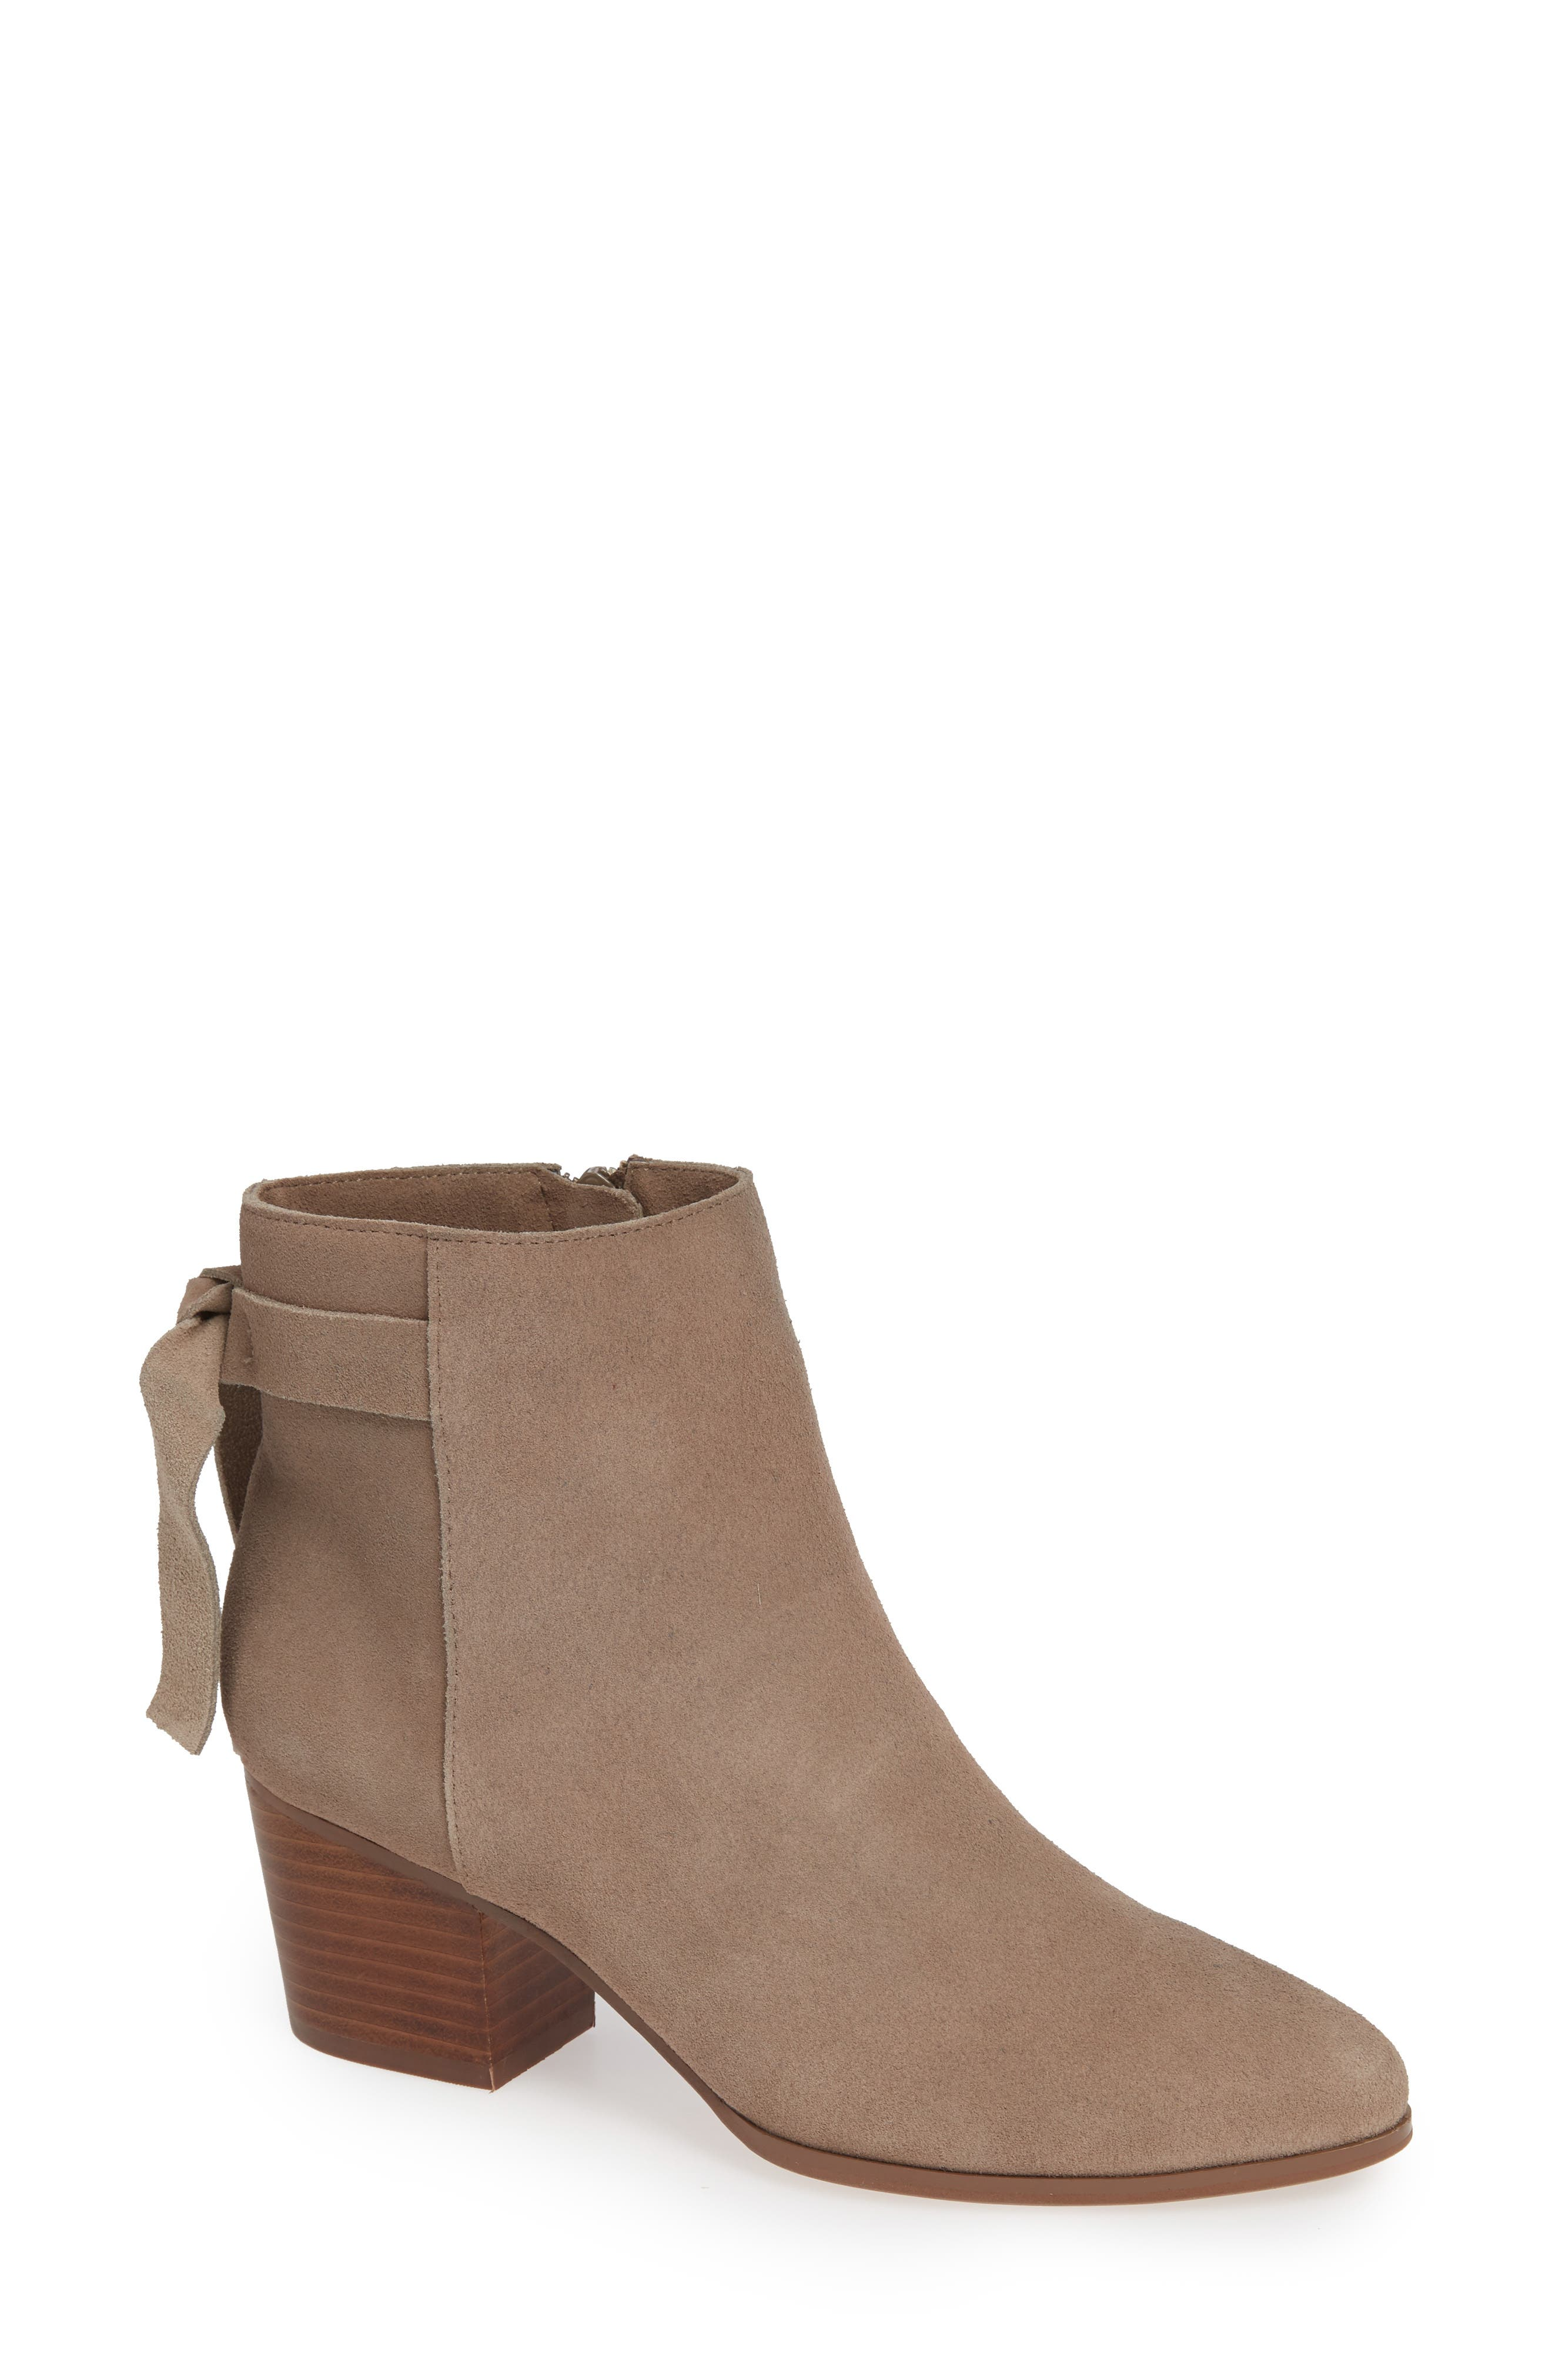 SOLE SOCIETY Rhilynn Bootie, Main, color, FALL TAUPE SUEDE